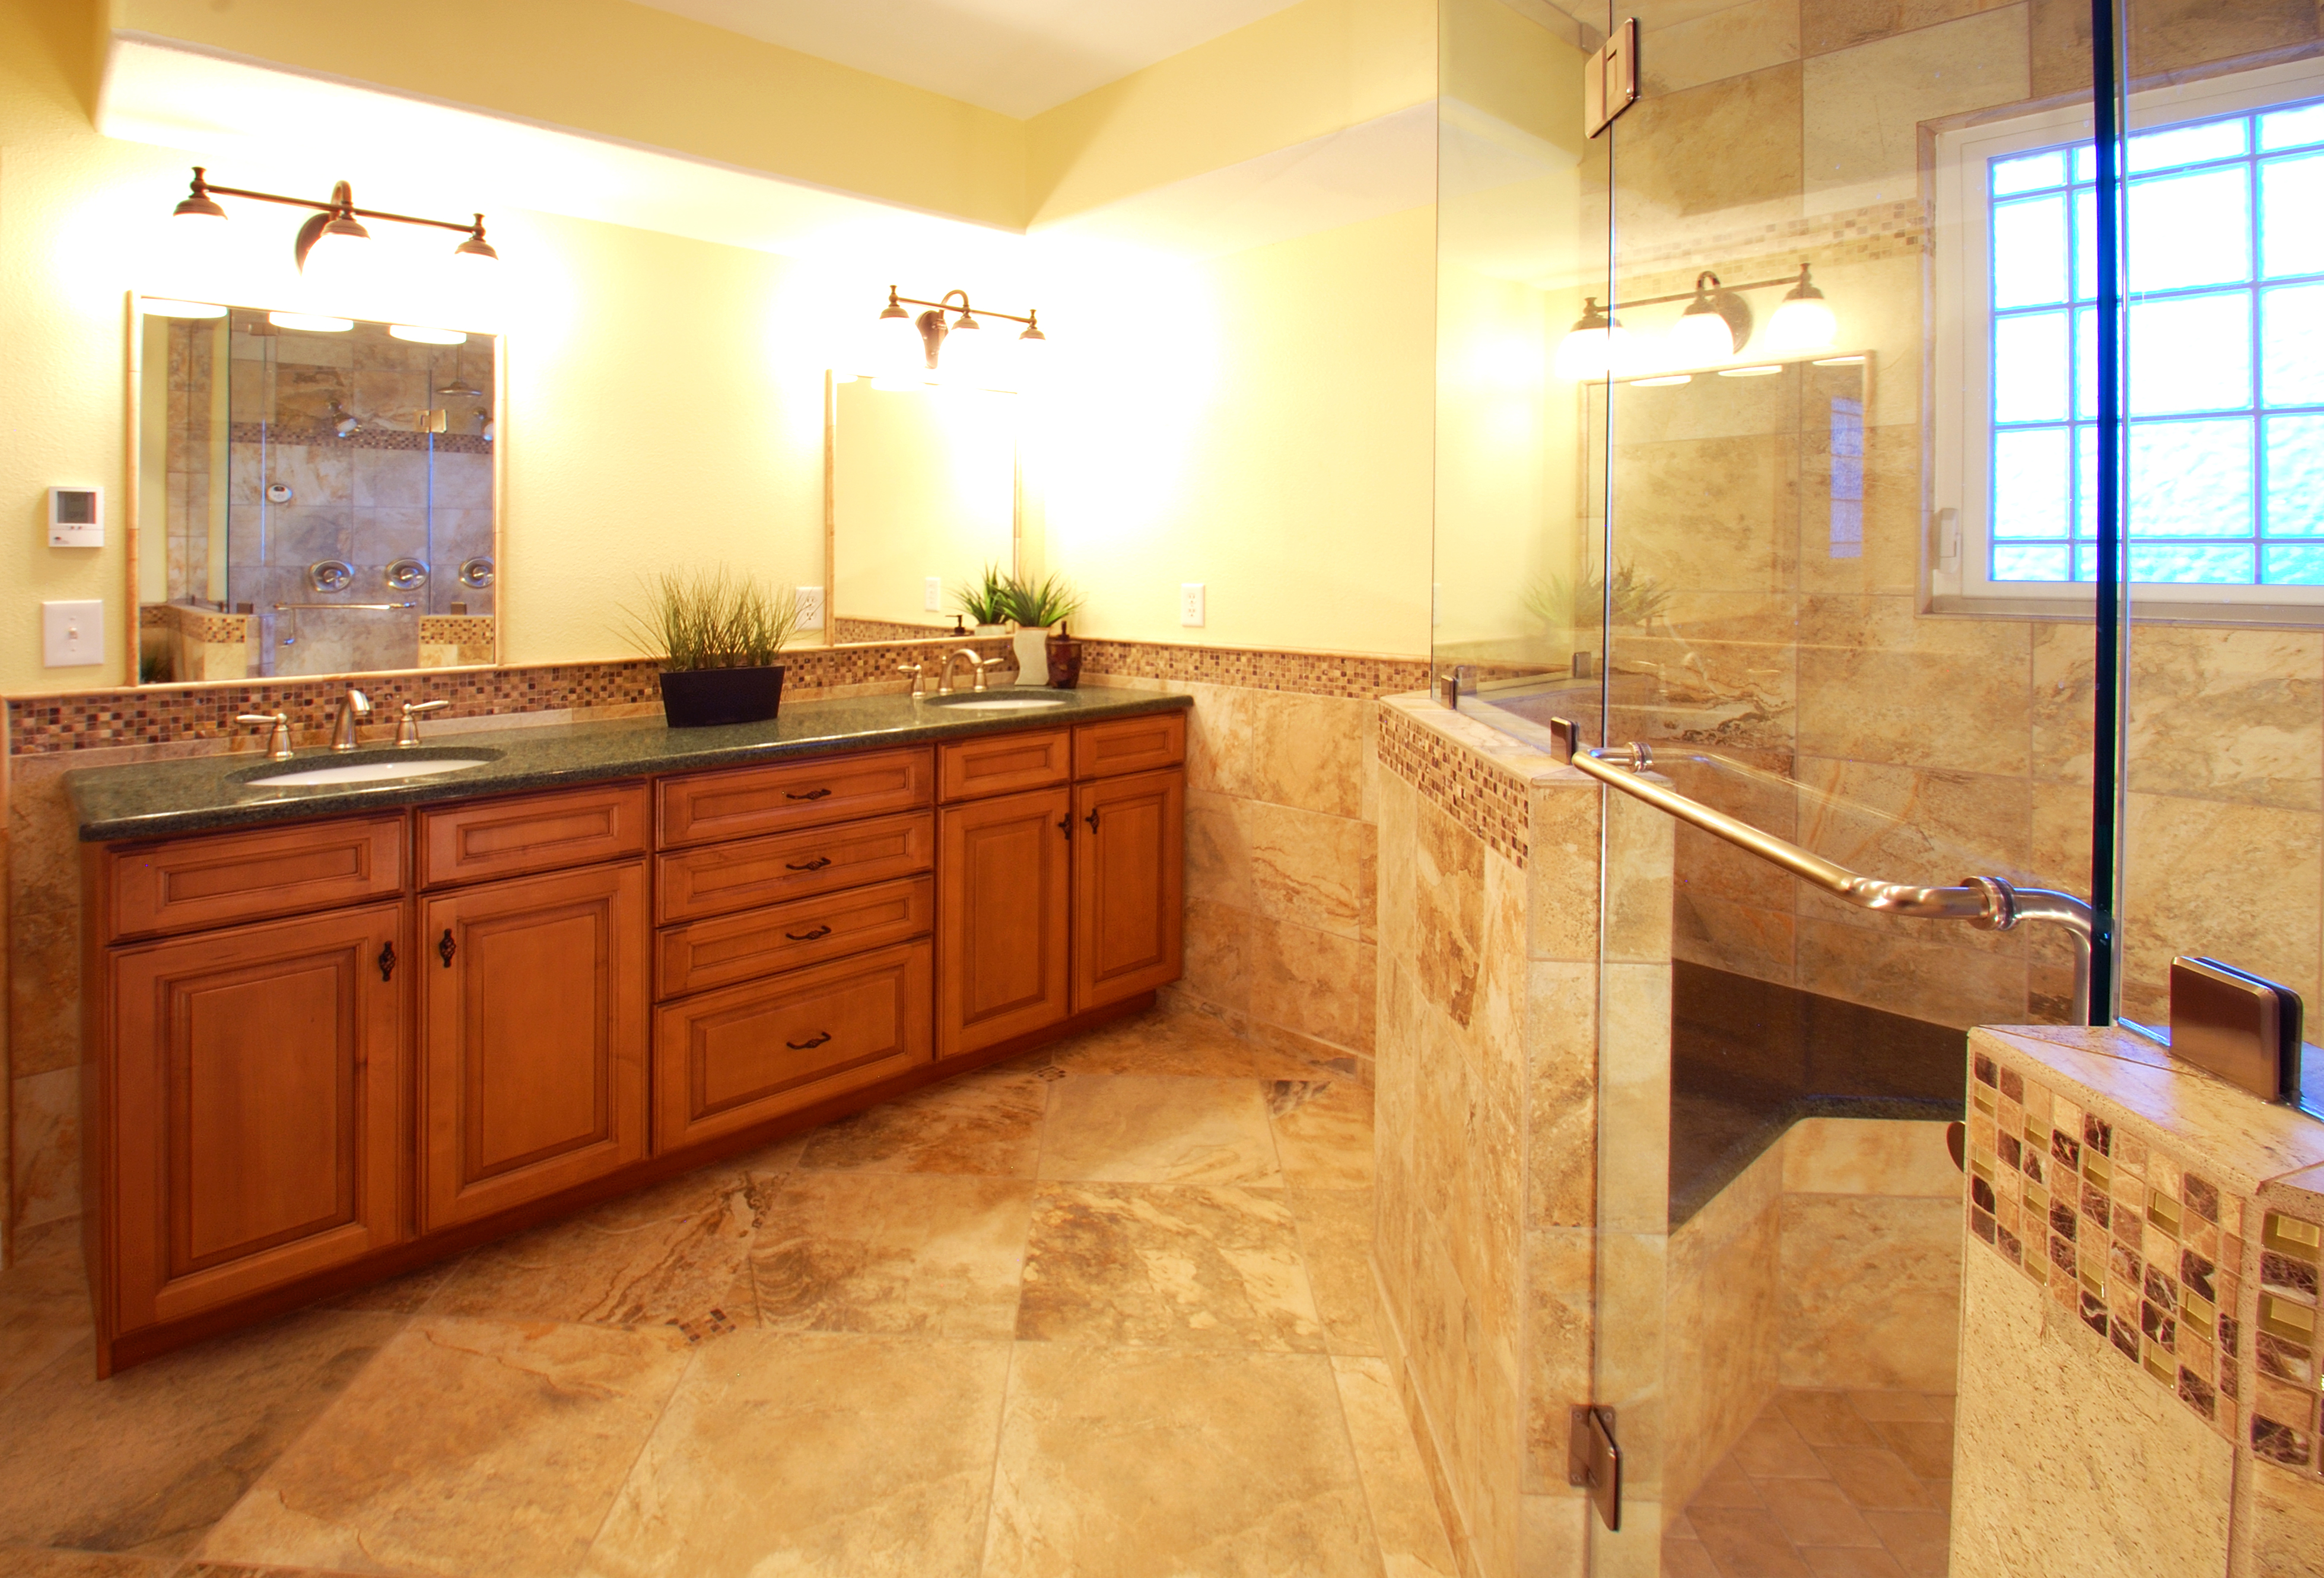 Home Remodeling Colorado Springs Co 28 Images Colorado Springs Kitchen Remodel Ideas Kitchen